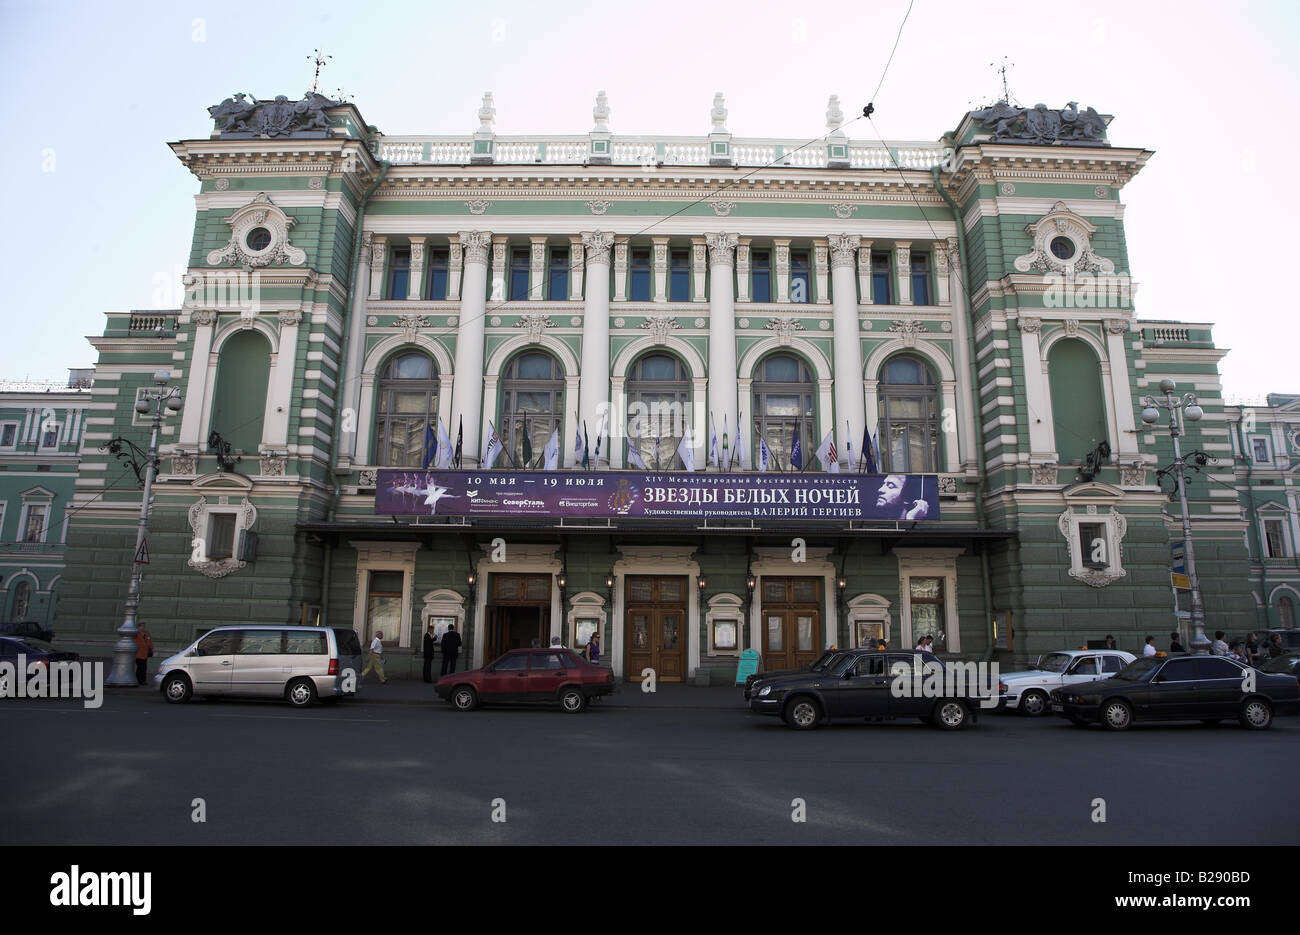 Cinemas in St. Petersburg: addresses, photos and reviews 57